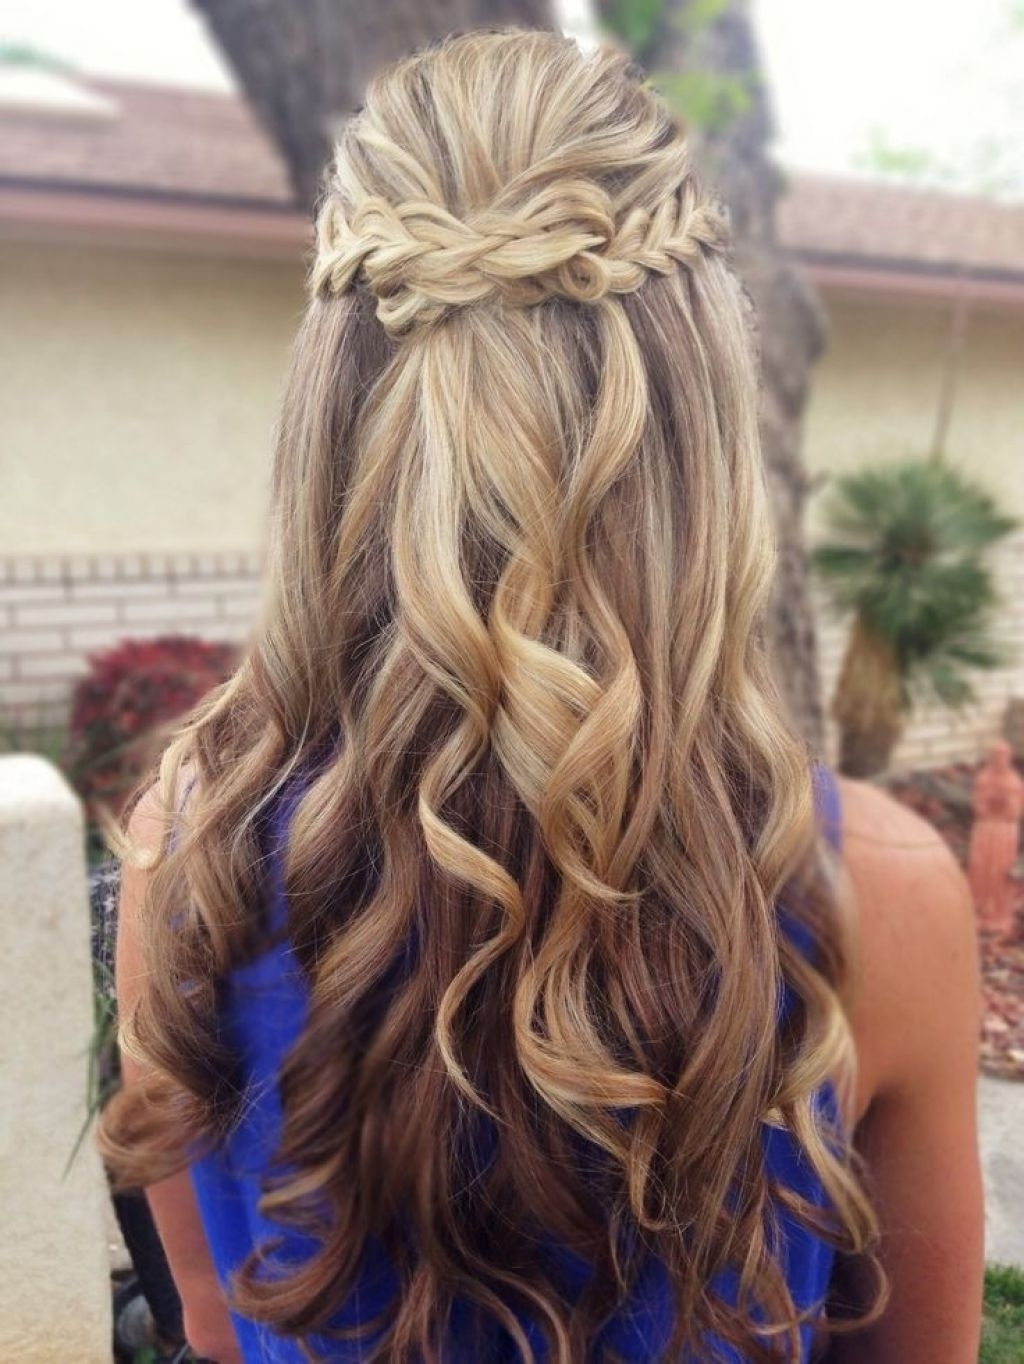 Preferred Formal Half Ponytail Hairstyles Intended For Half Updo Prom Hairstyles Prom Updos For Long Hair Long Hairstyle (View 17 of 20)